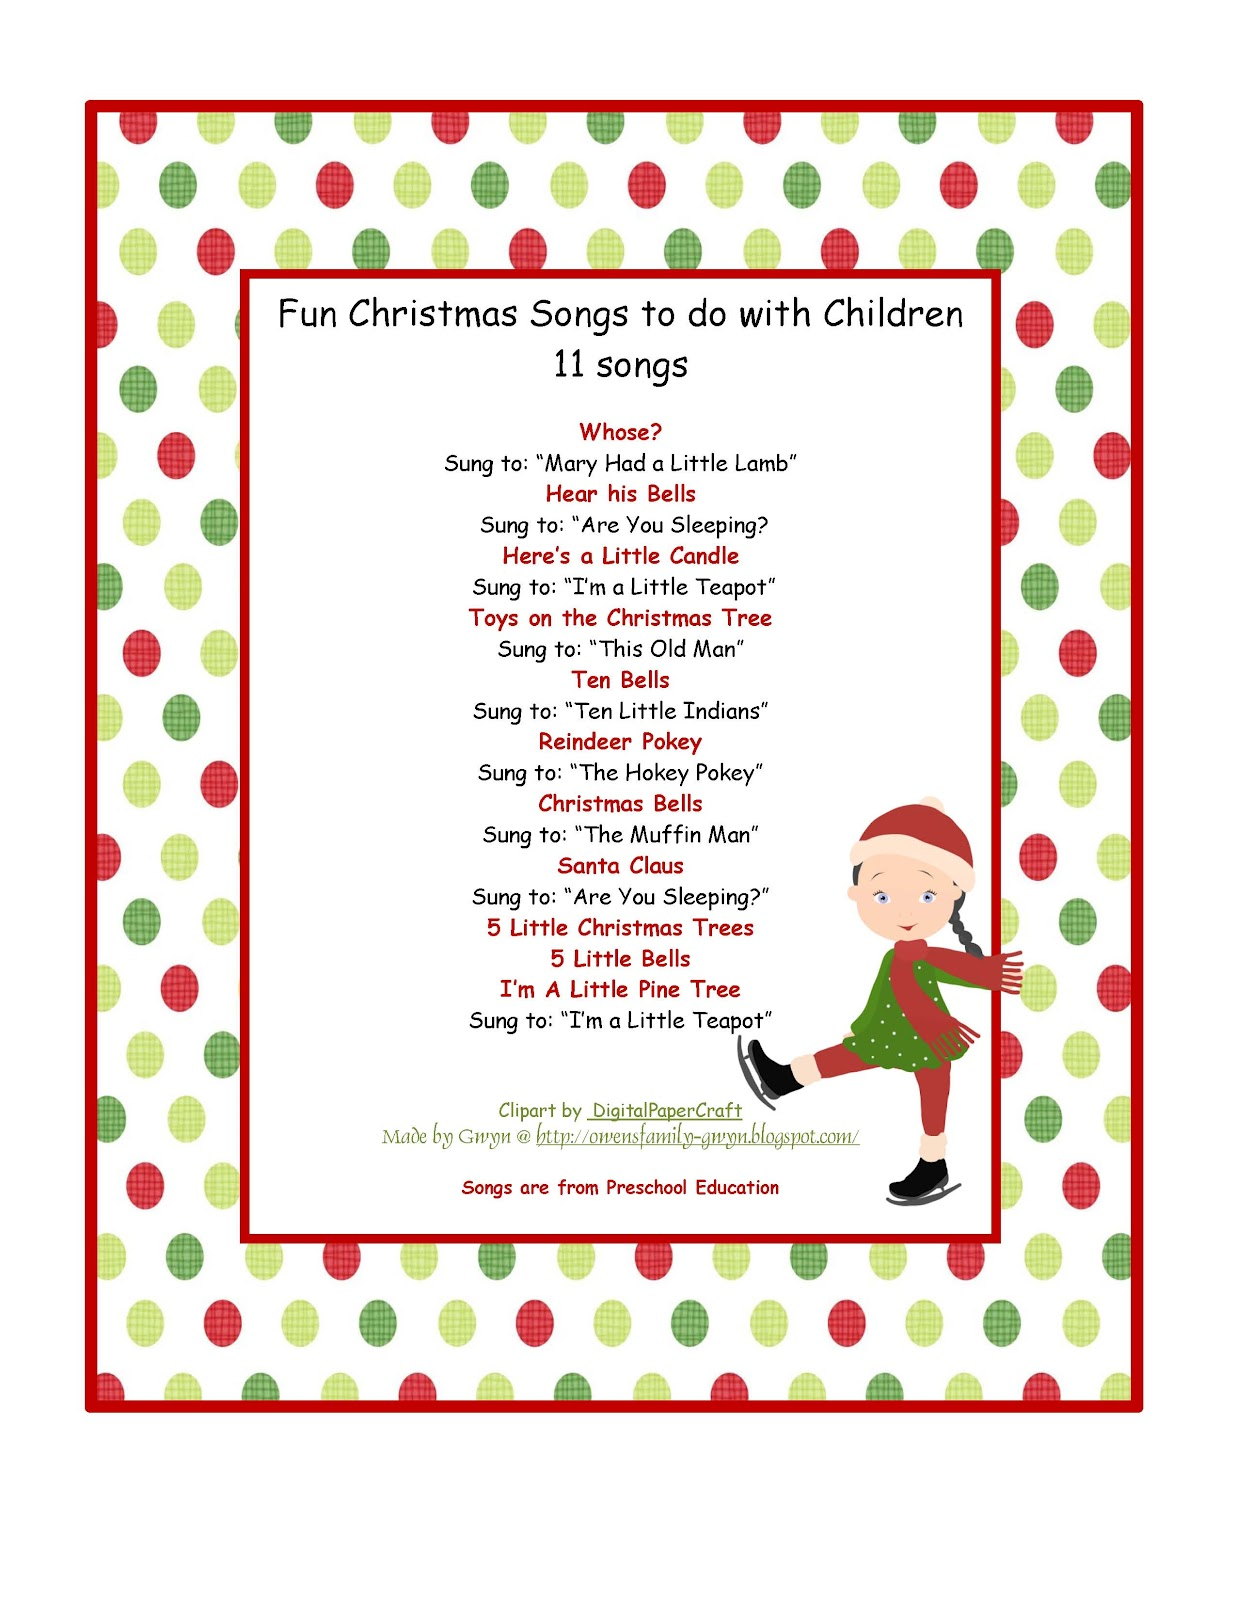 image regarding Silent Night Lyrics Printable referred to as Halloween Gallery Image: Xmas Audio - Xmas